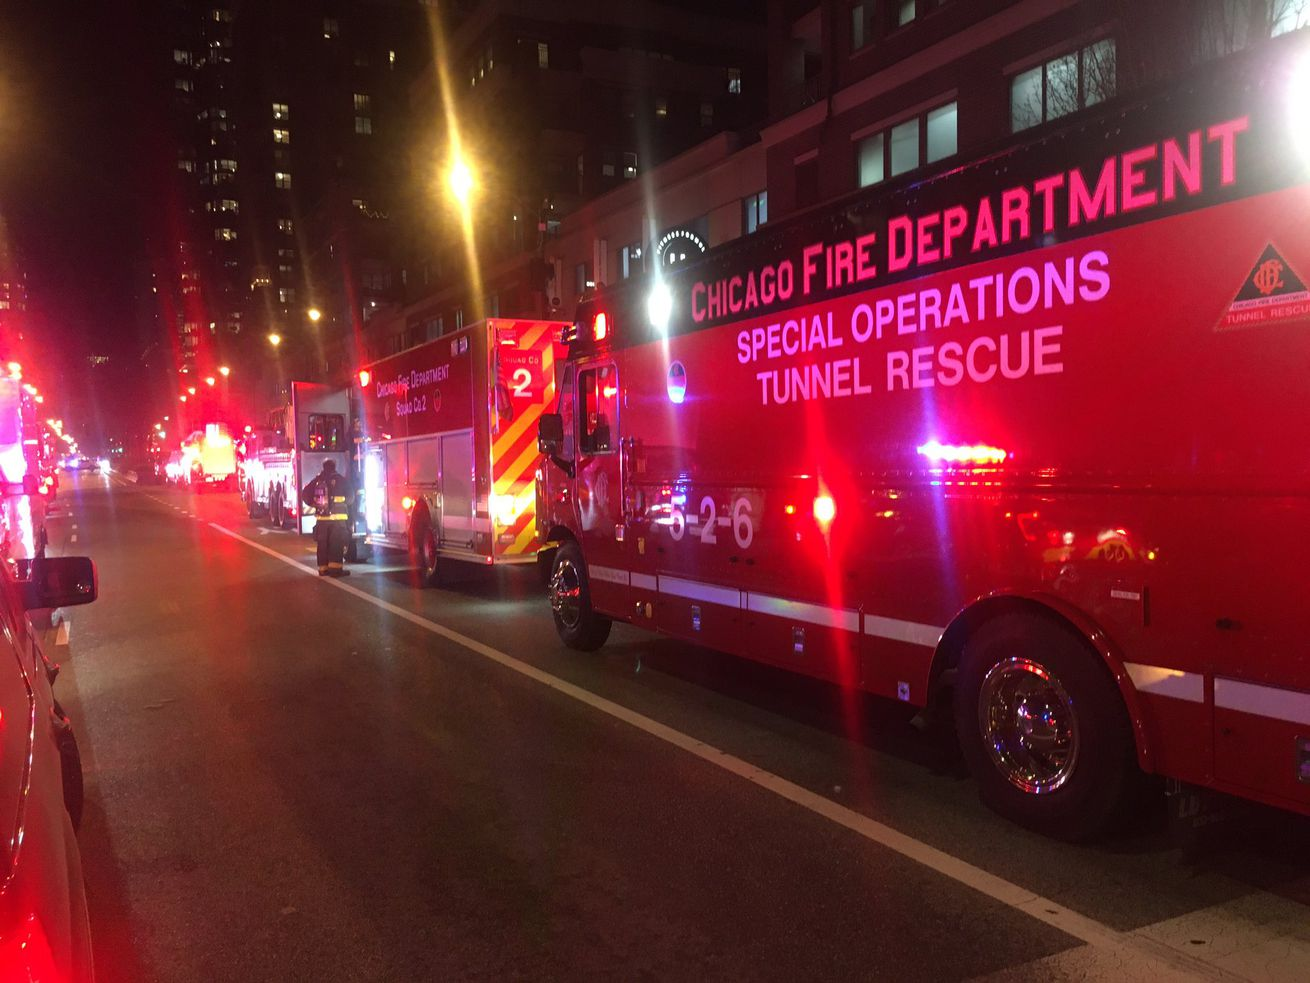 Firefighters responded to a rubbish fire Dec. 3 impacting Red Line train service.